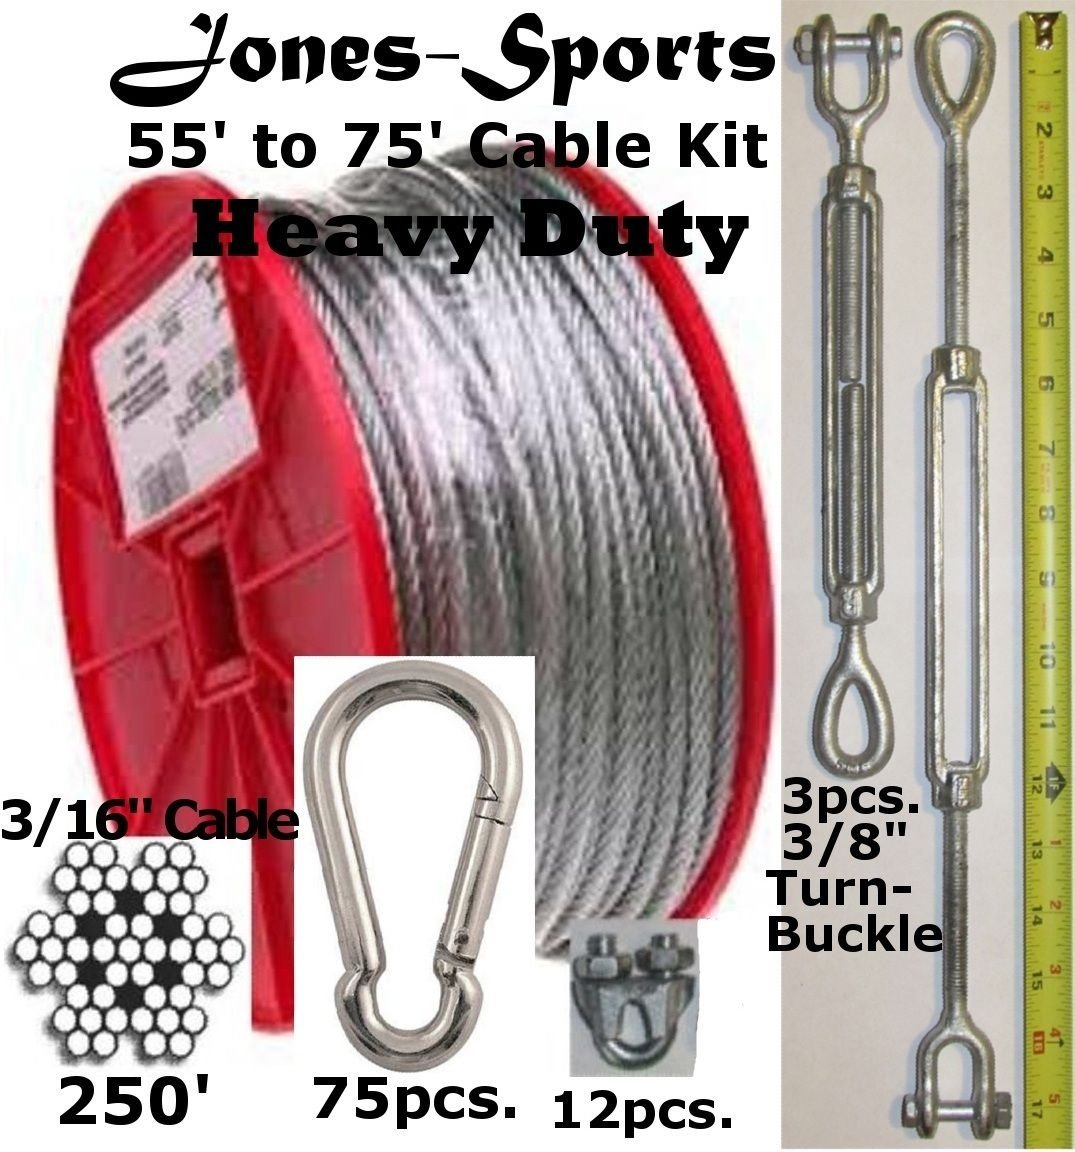 Heavy Duty 70' Indoor/Outdoor Cable Kit for Baseball Softball Batting Cage Net with 3/8'' Turnbuckles, 3/16'' cable clamps, and zinc carabiners by Pinnon Hatch Farms/ Jones Sports